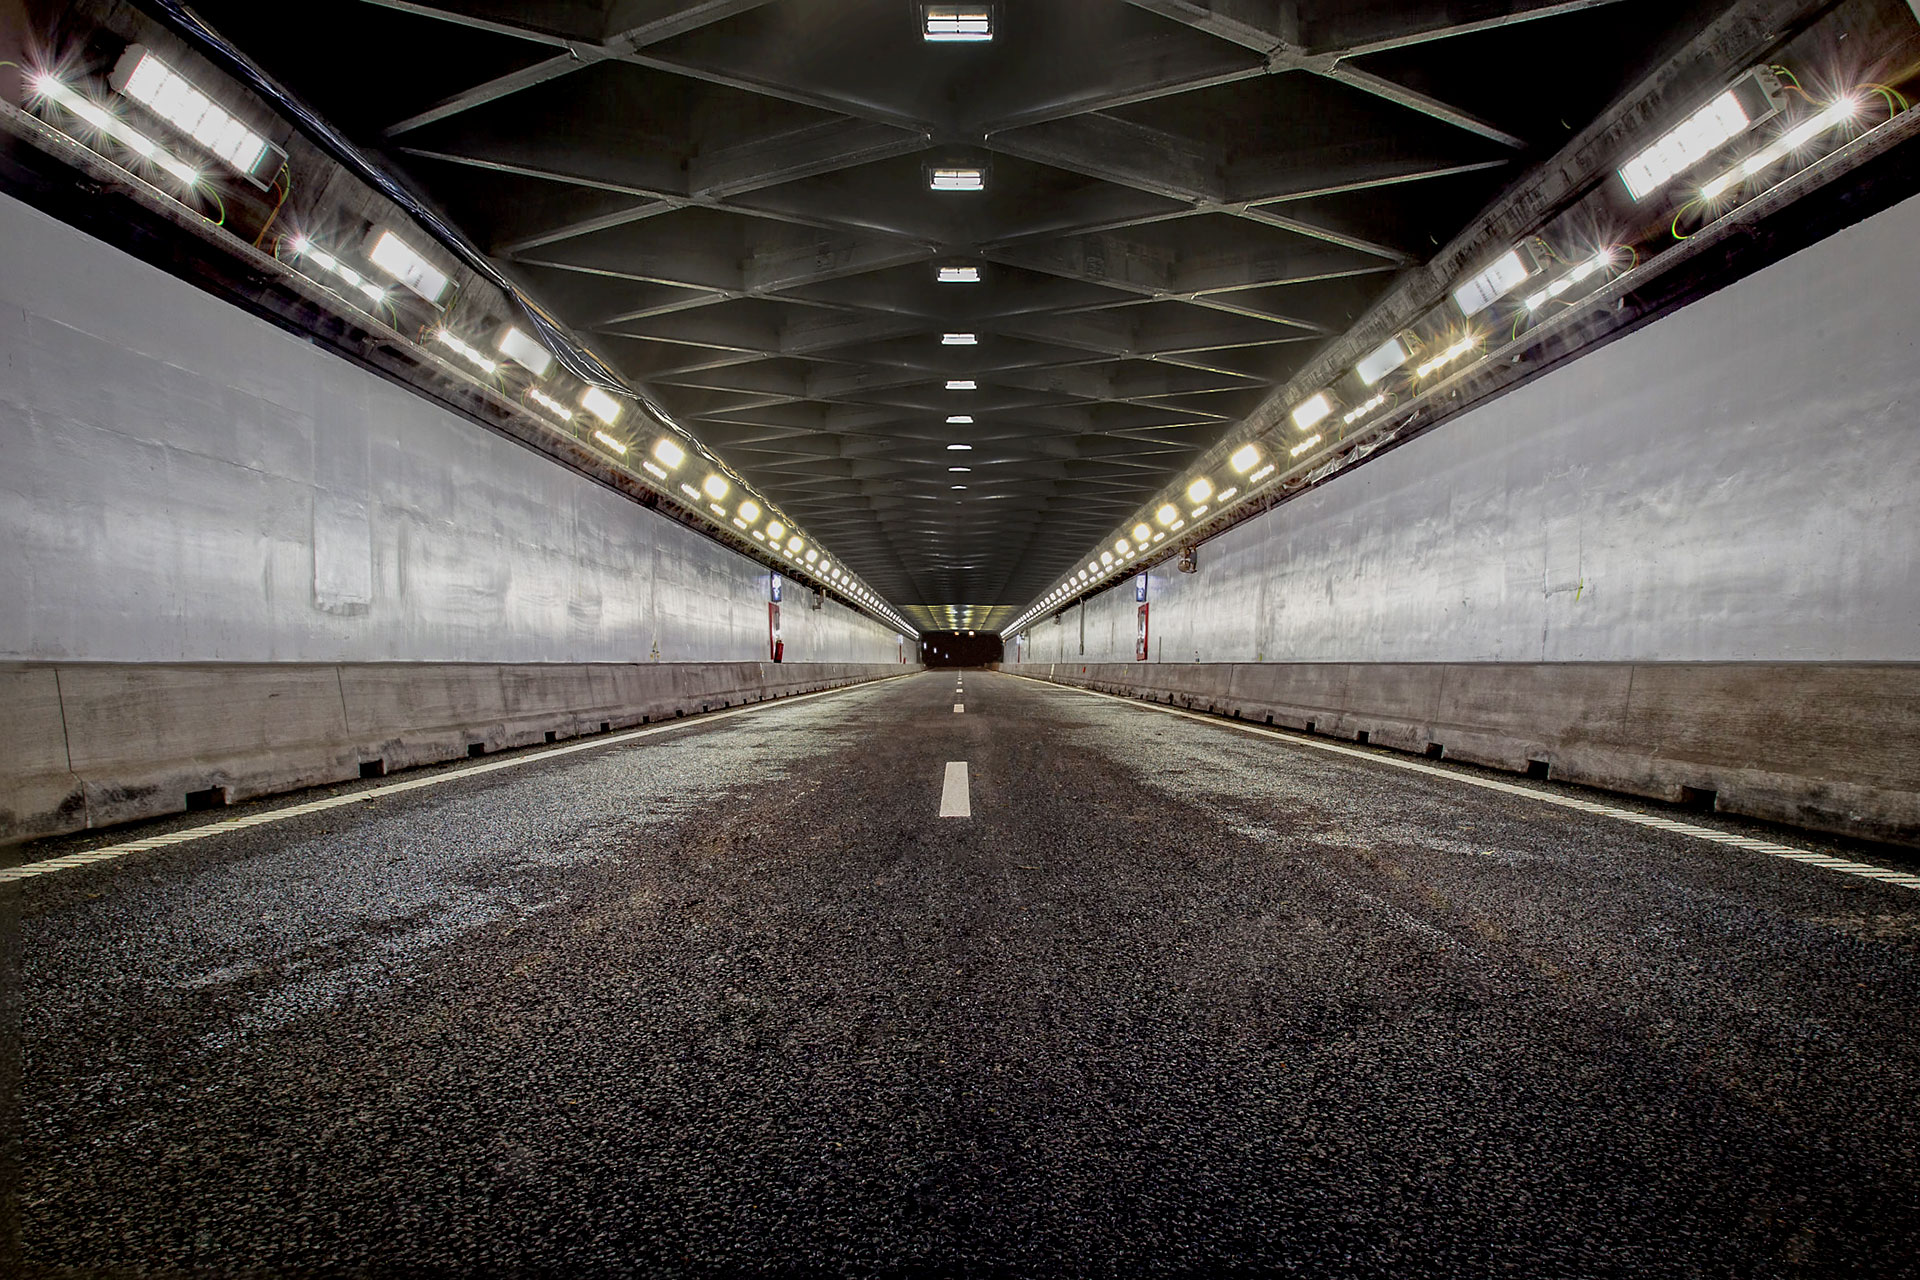 ContiLED ensures safety and visual comfort for motorists in Velser Tunnel